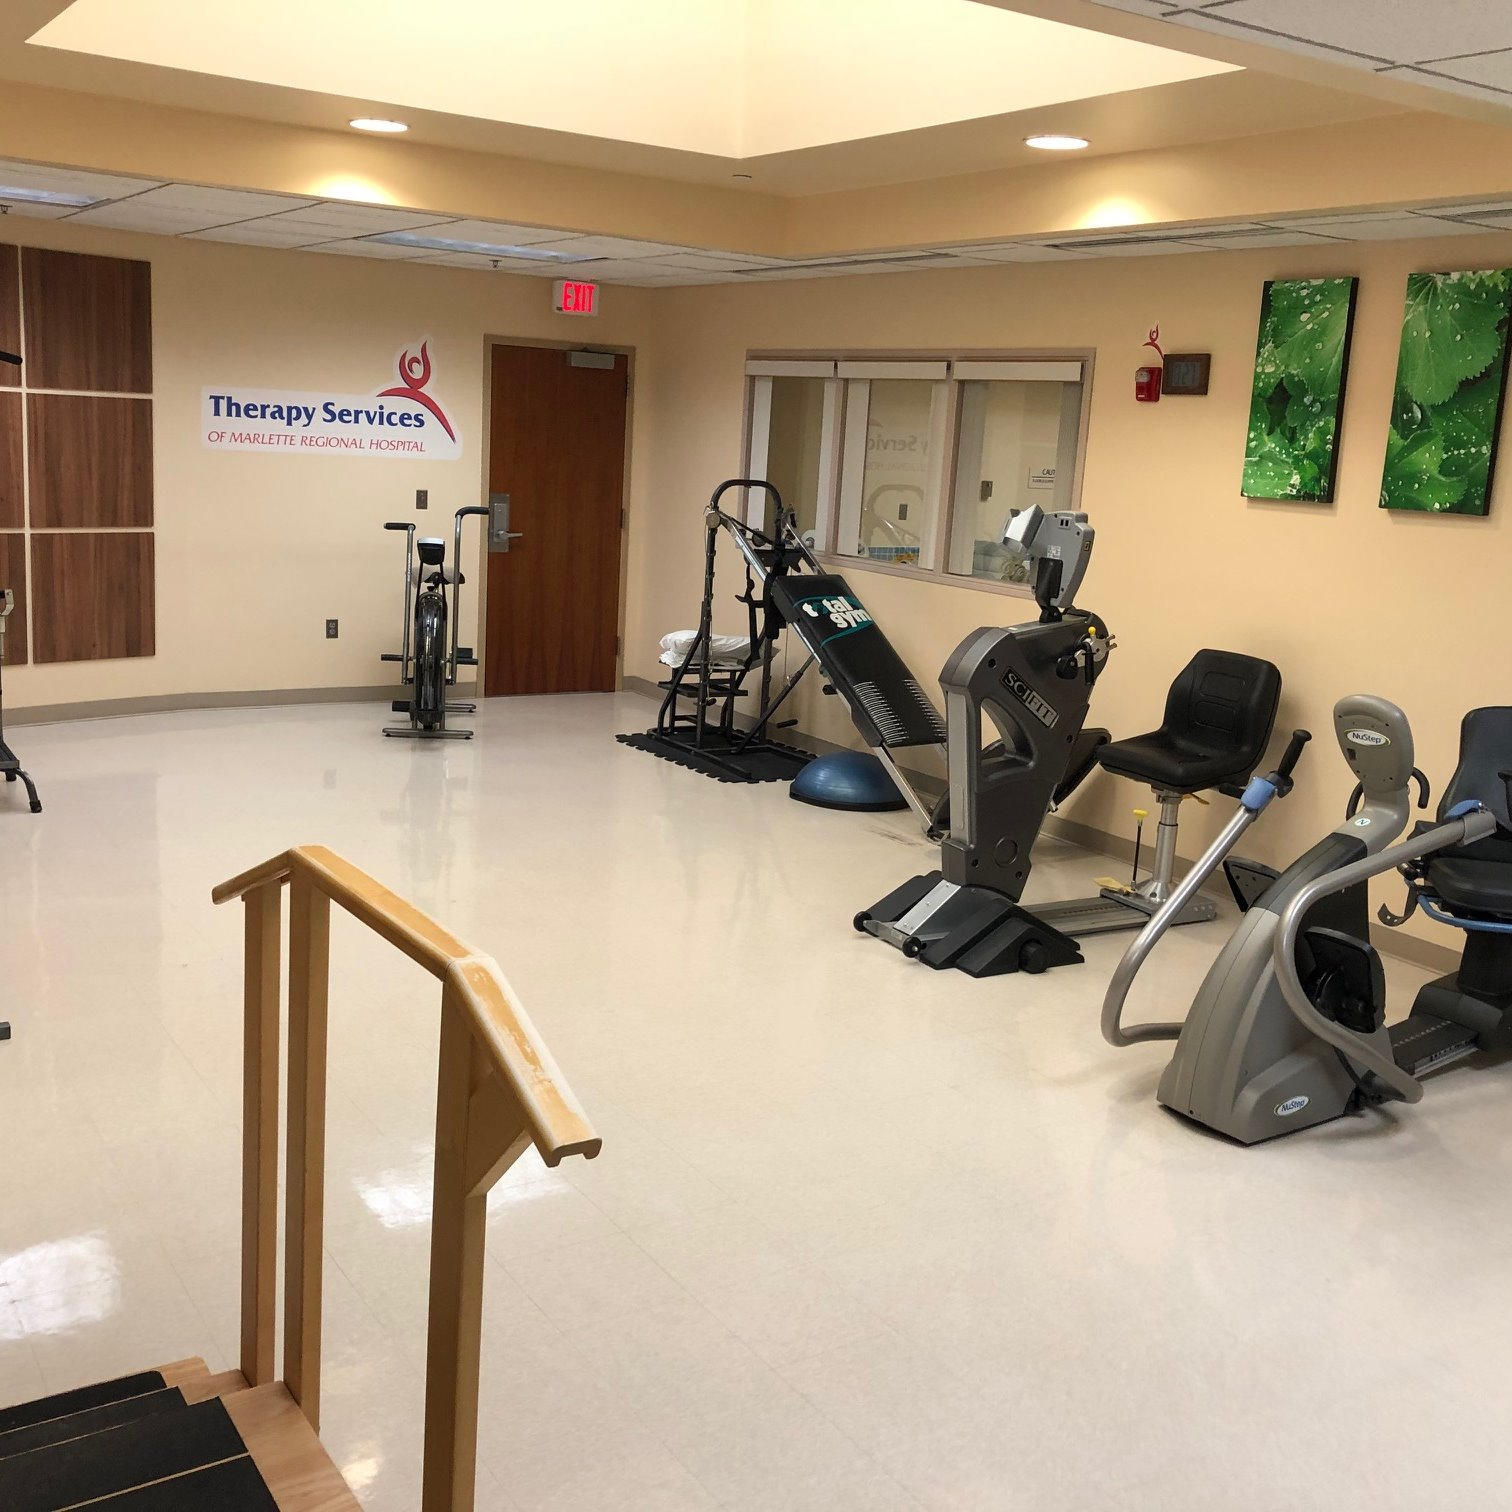 Therapy Services of Marlette Regional Hospital Image